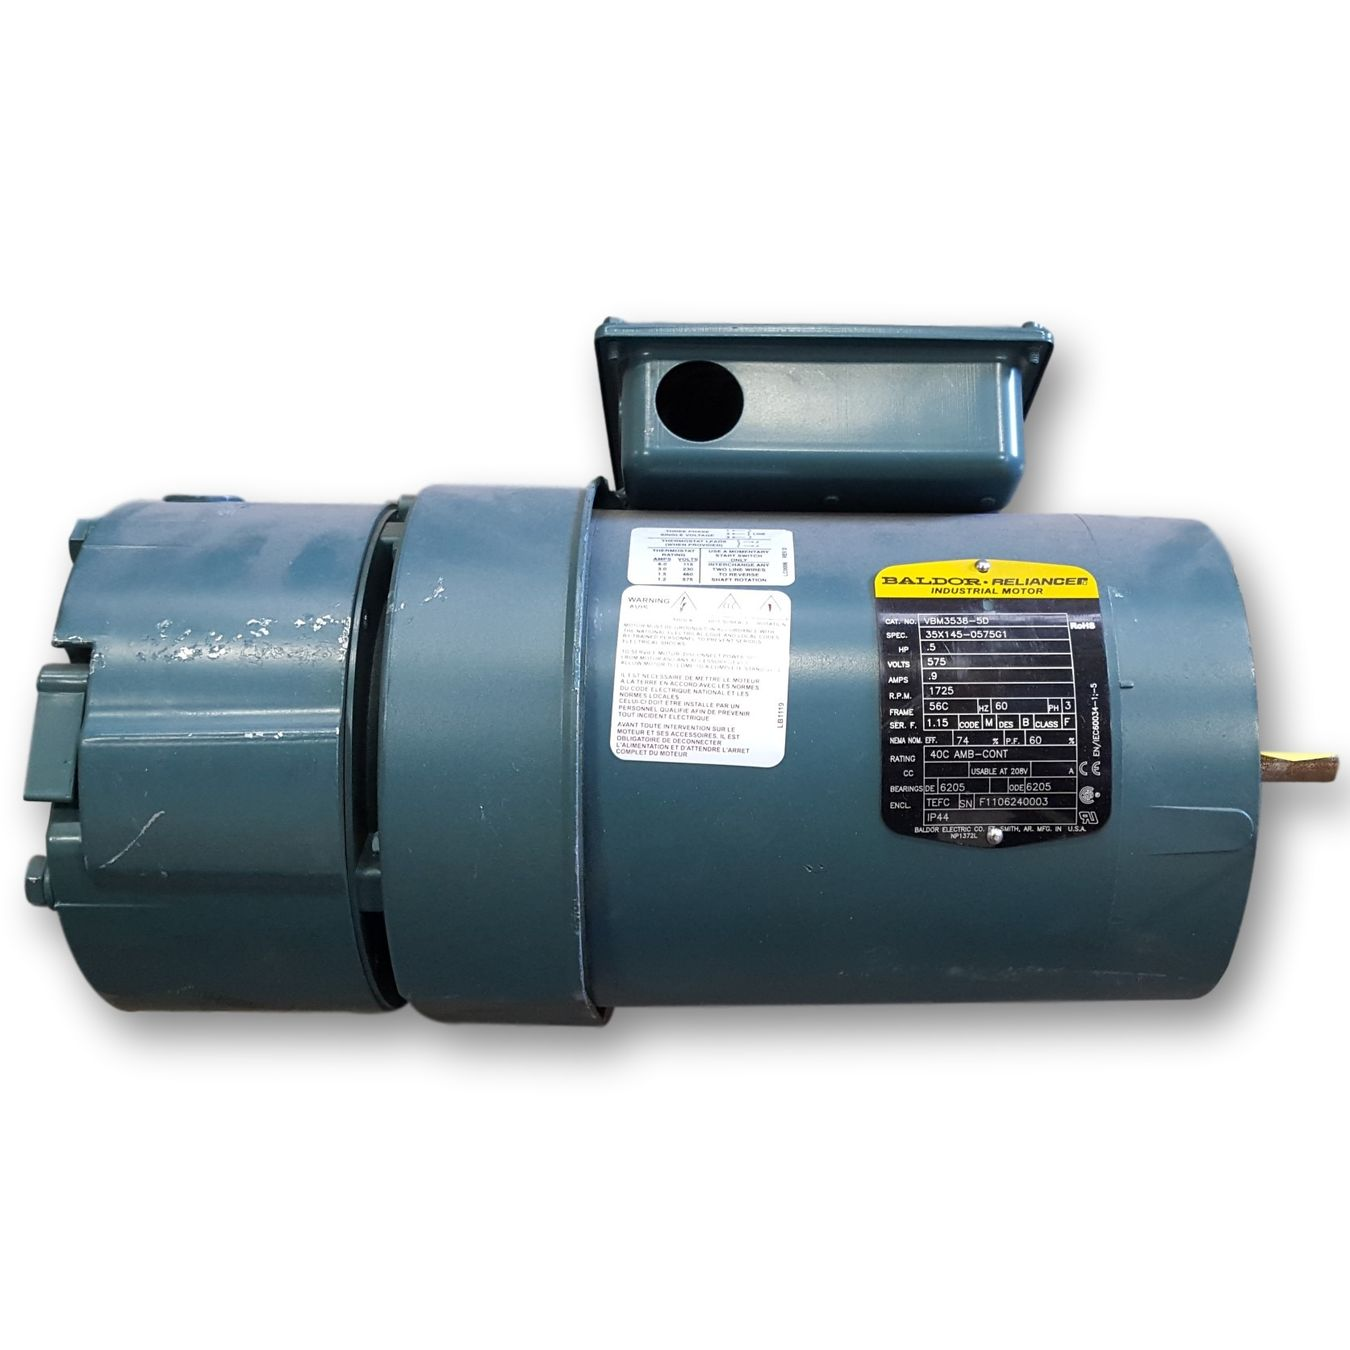 Used 1 2 hp baldor reliance industrial motor 1725 rpm for 2 hp motor current